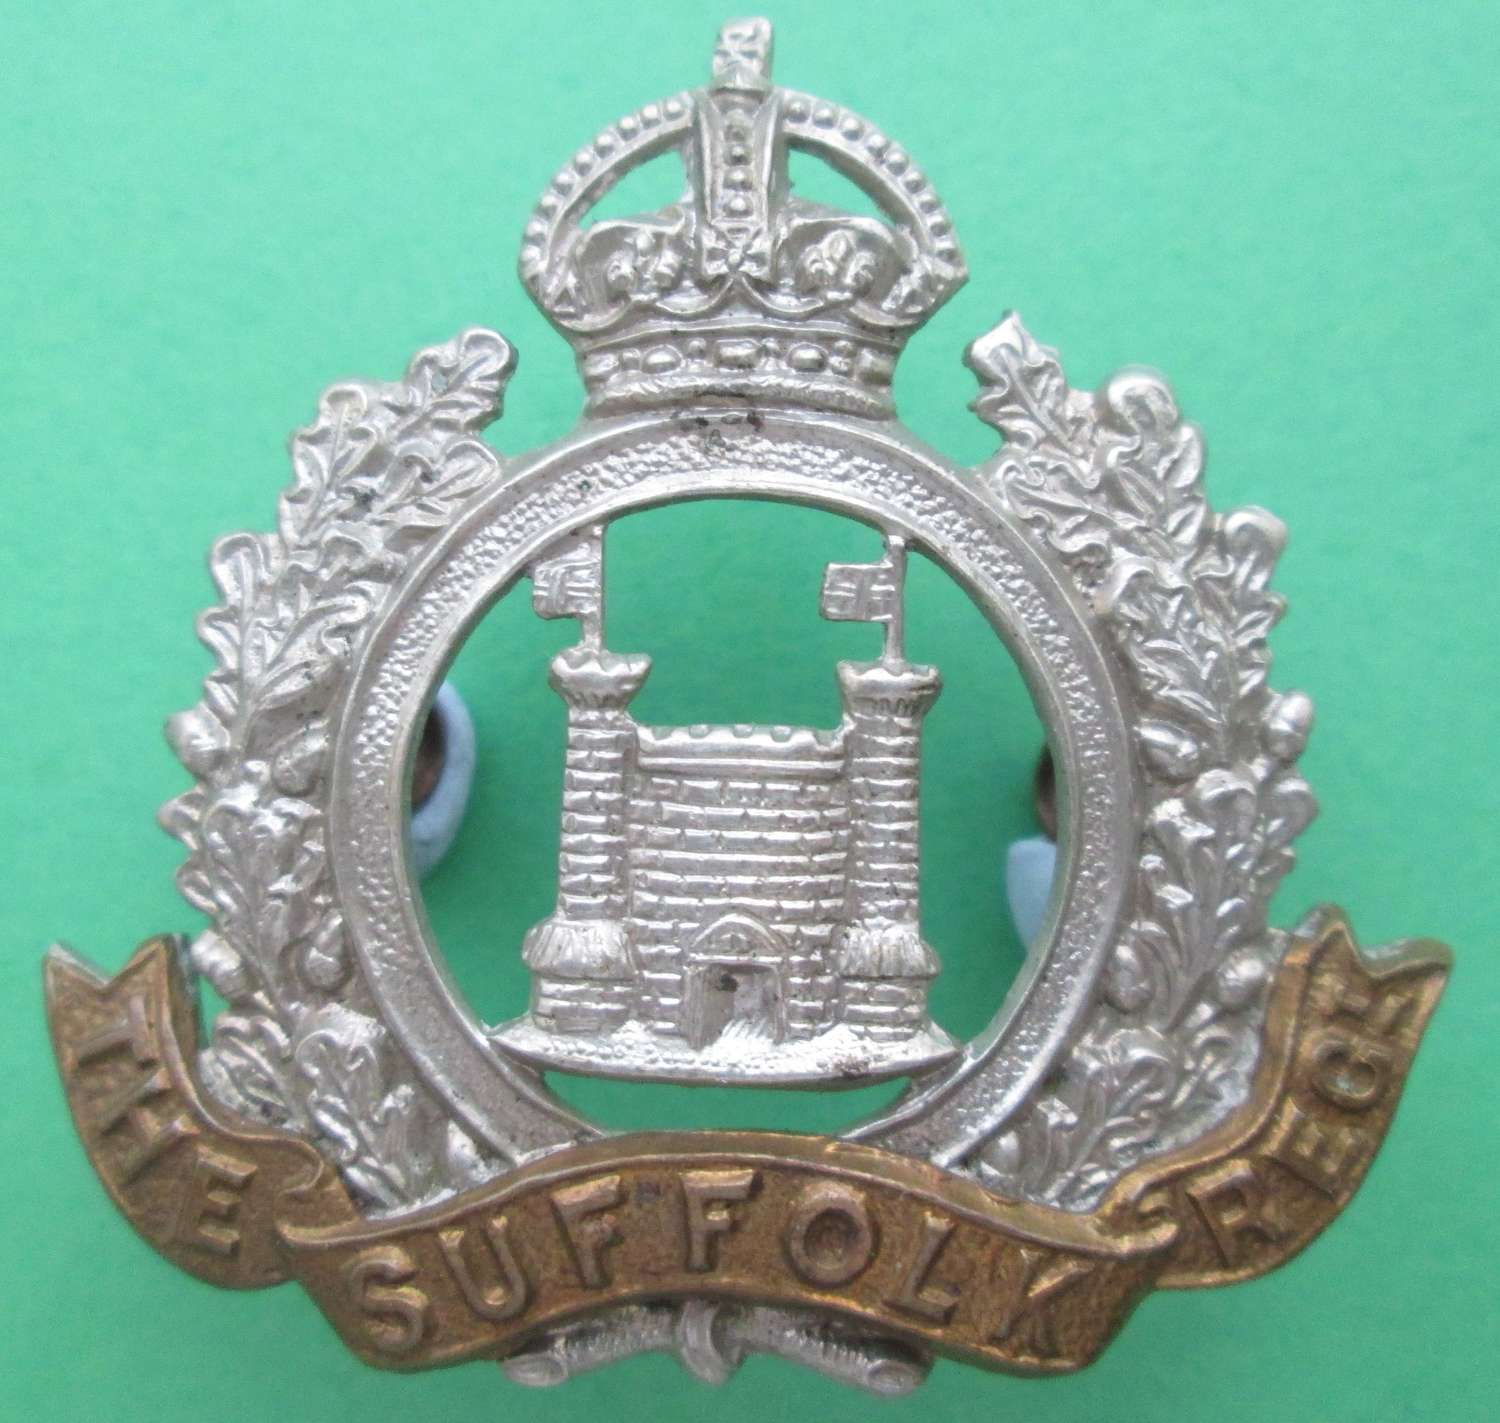 A SUFFOLK TERRITORIAL REGIMENT CAP BADGE